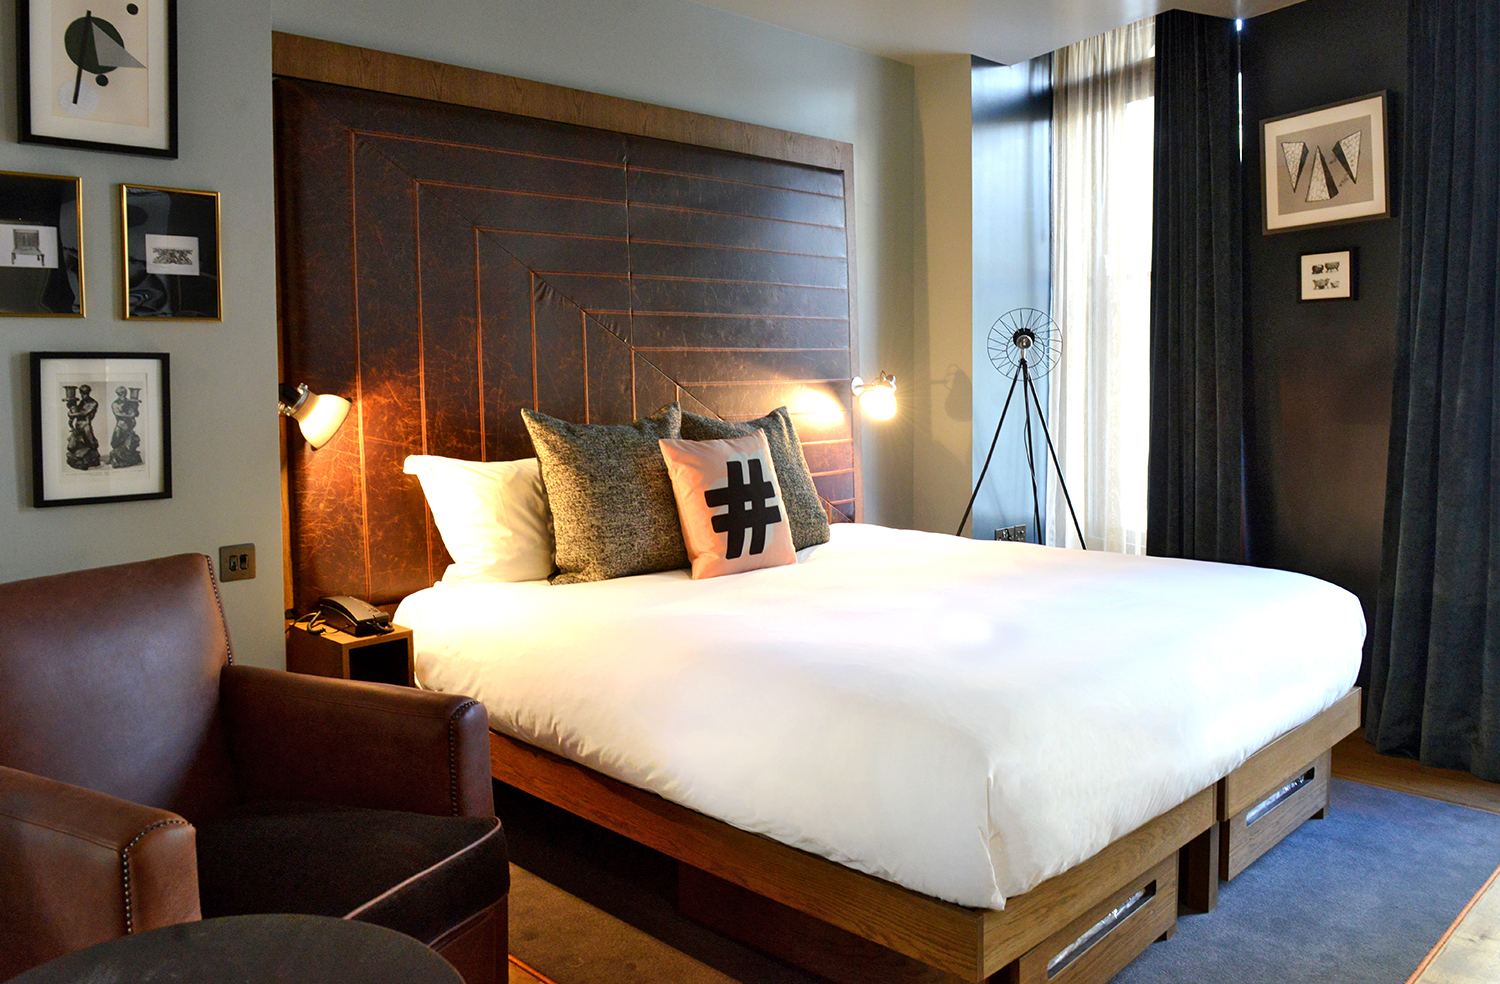 Hoxton Hotel, Where to stay during London Fashion Week